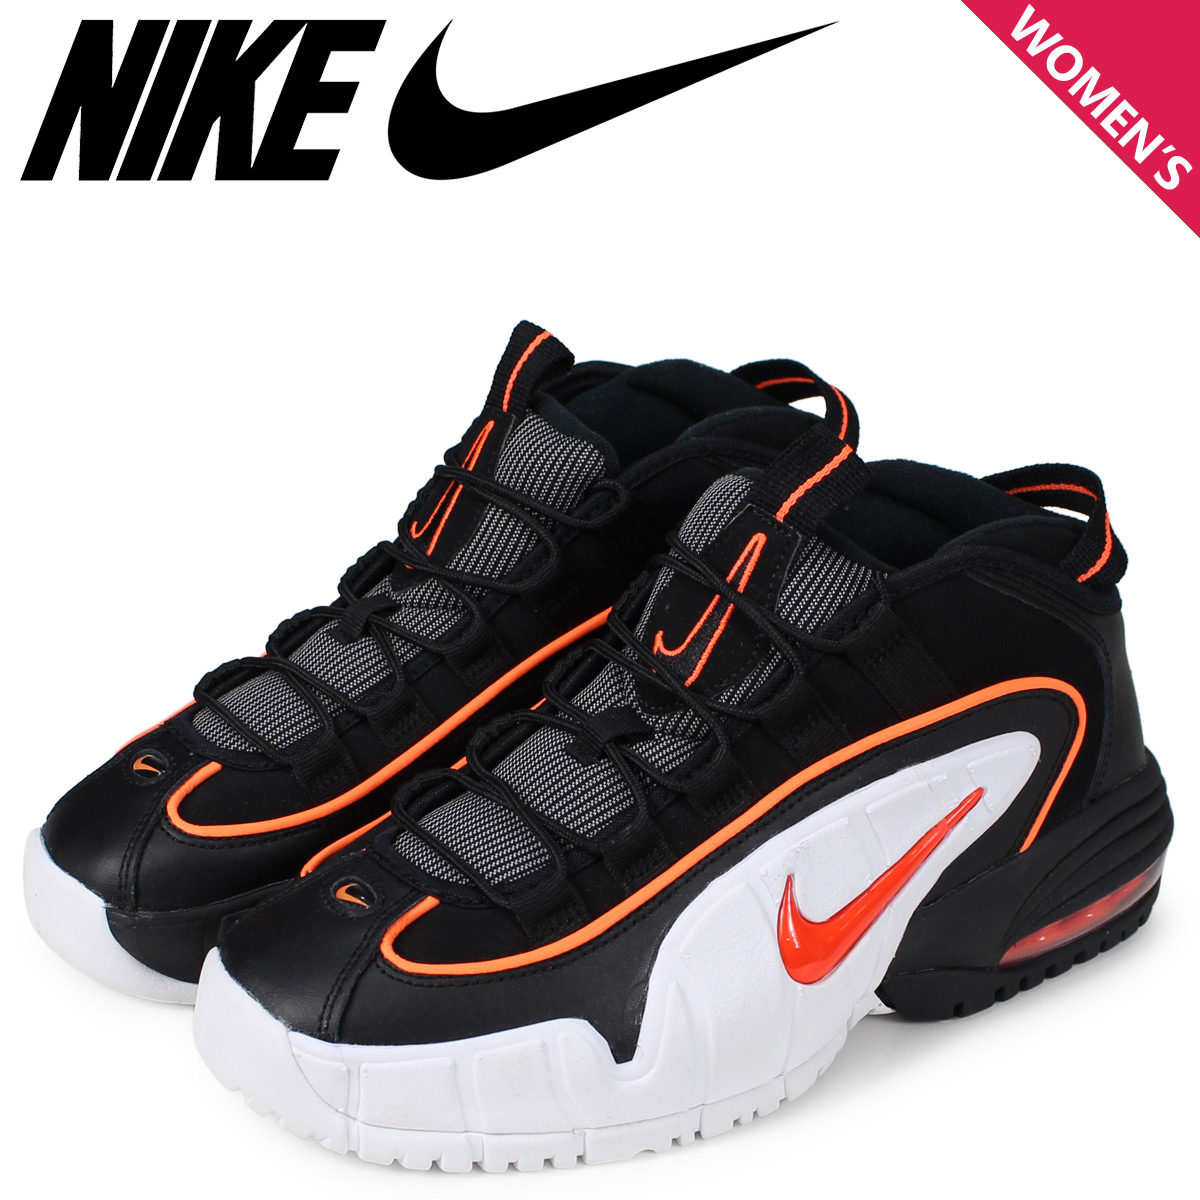 fda454a32977 Sugar Online Shop  NIKE Nike air penny Lady s sneakers AIR MAX PENNY ...